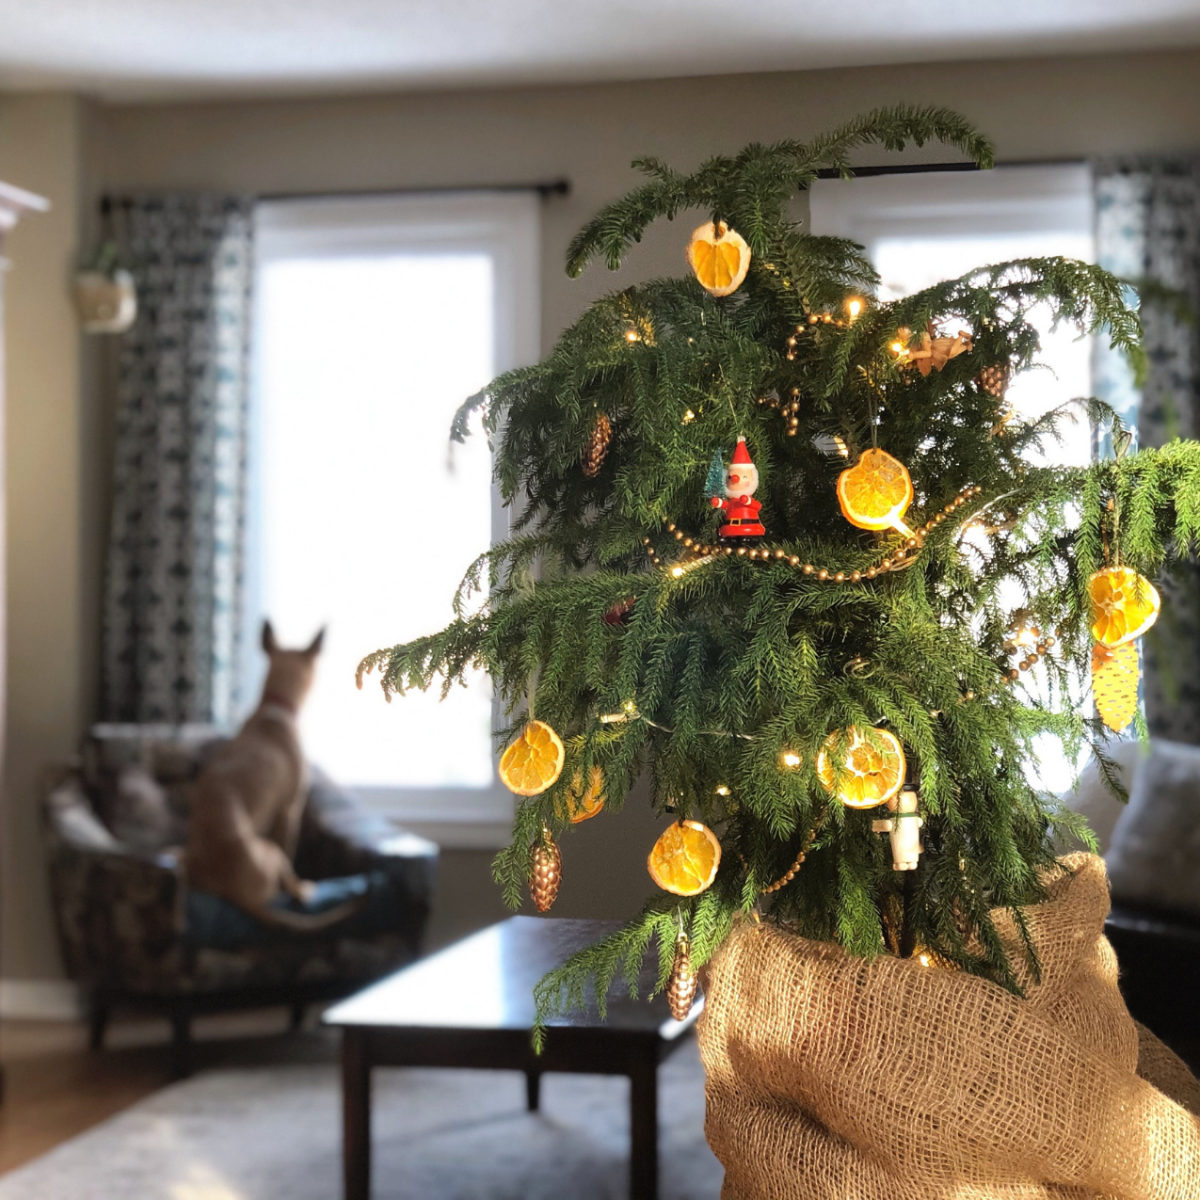 A small potted fir tree, decorated with dried orange slices, twinkle lights, a bead garland, and a vintage Santa sits in the foreground to the right of frame. The base is wrapped in burlap. In the background, our rescue dogs sits upright in a chair looking out the window.